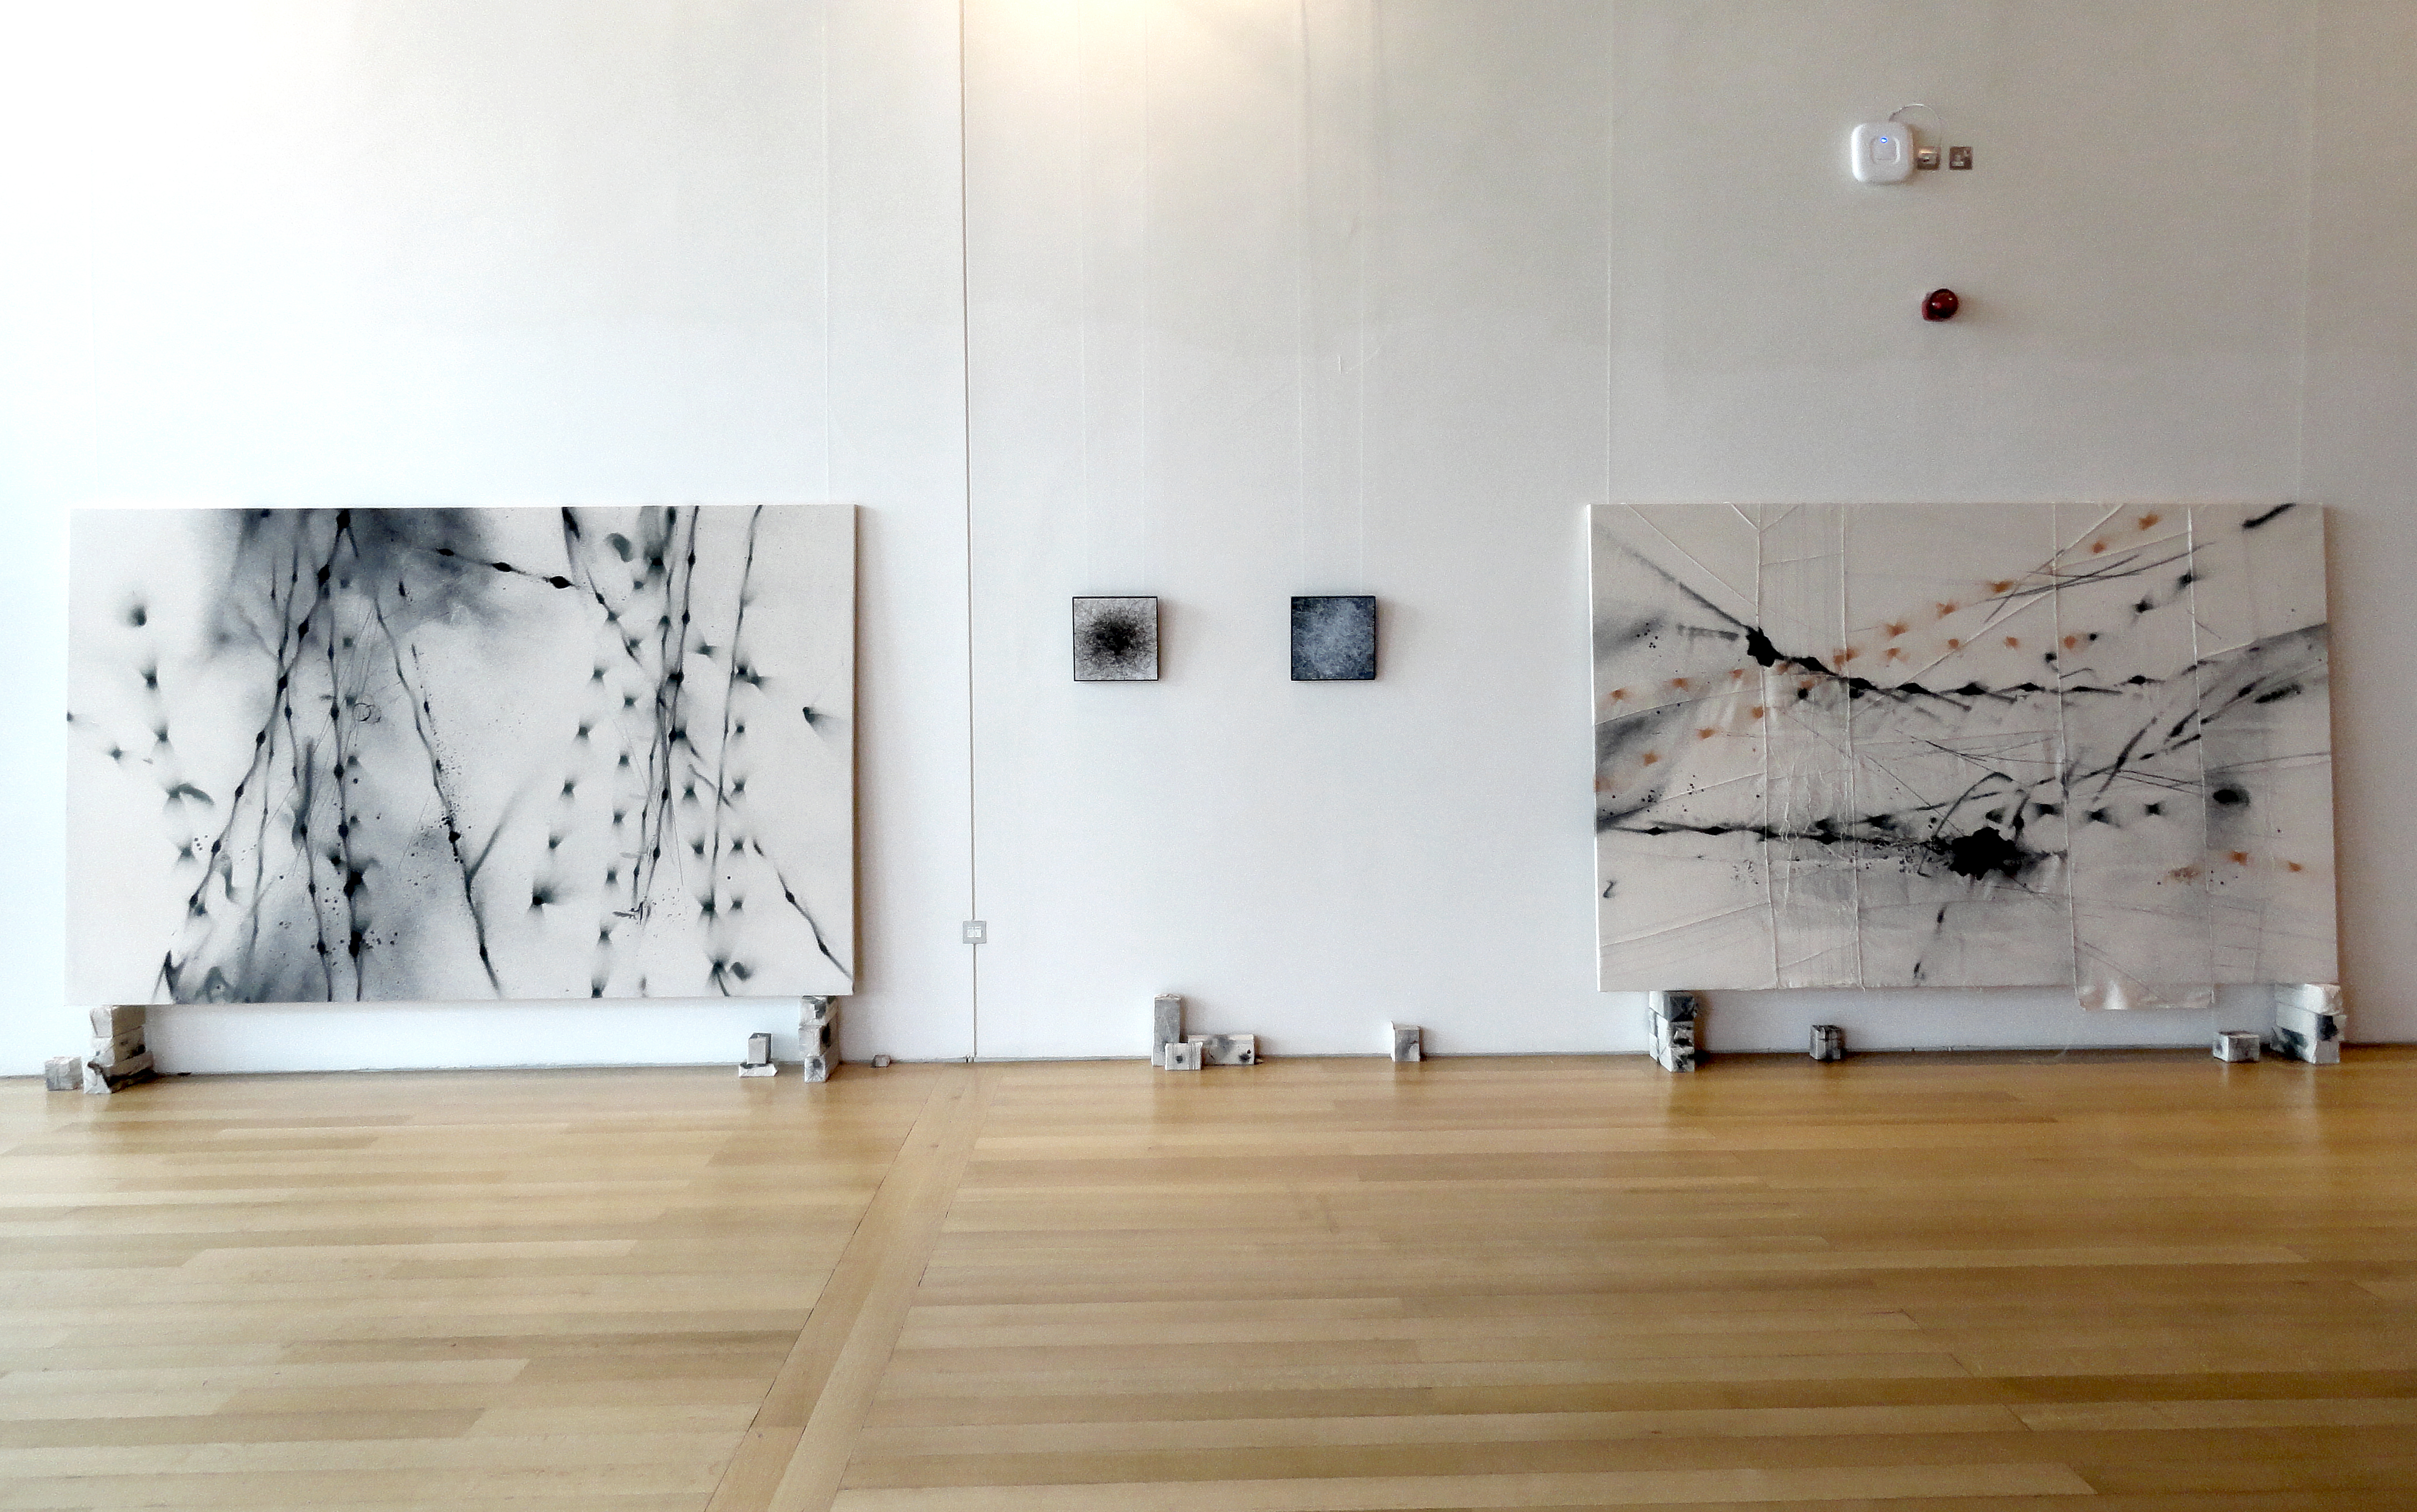 Painting & Resistance Exhibition at The Apex